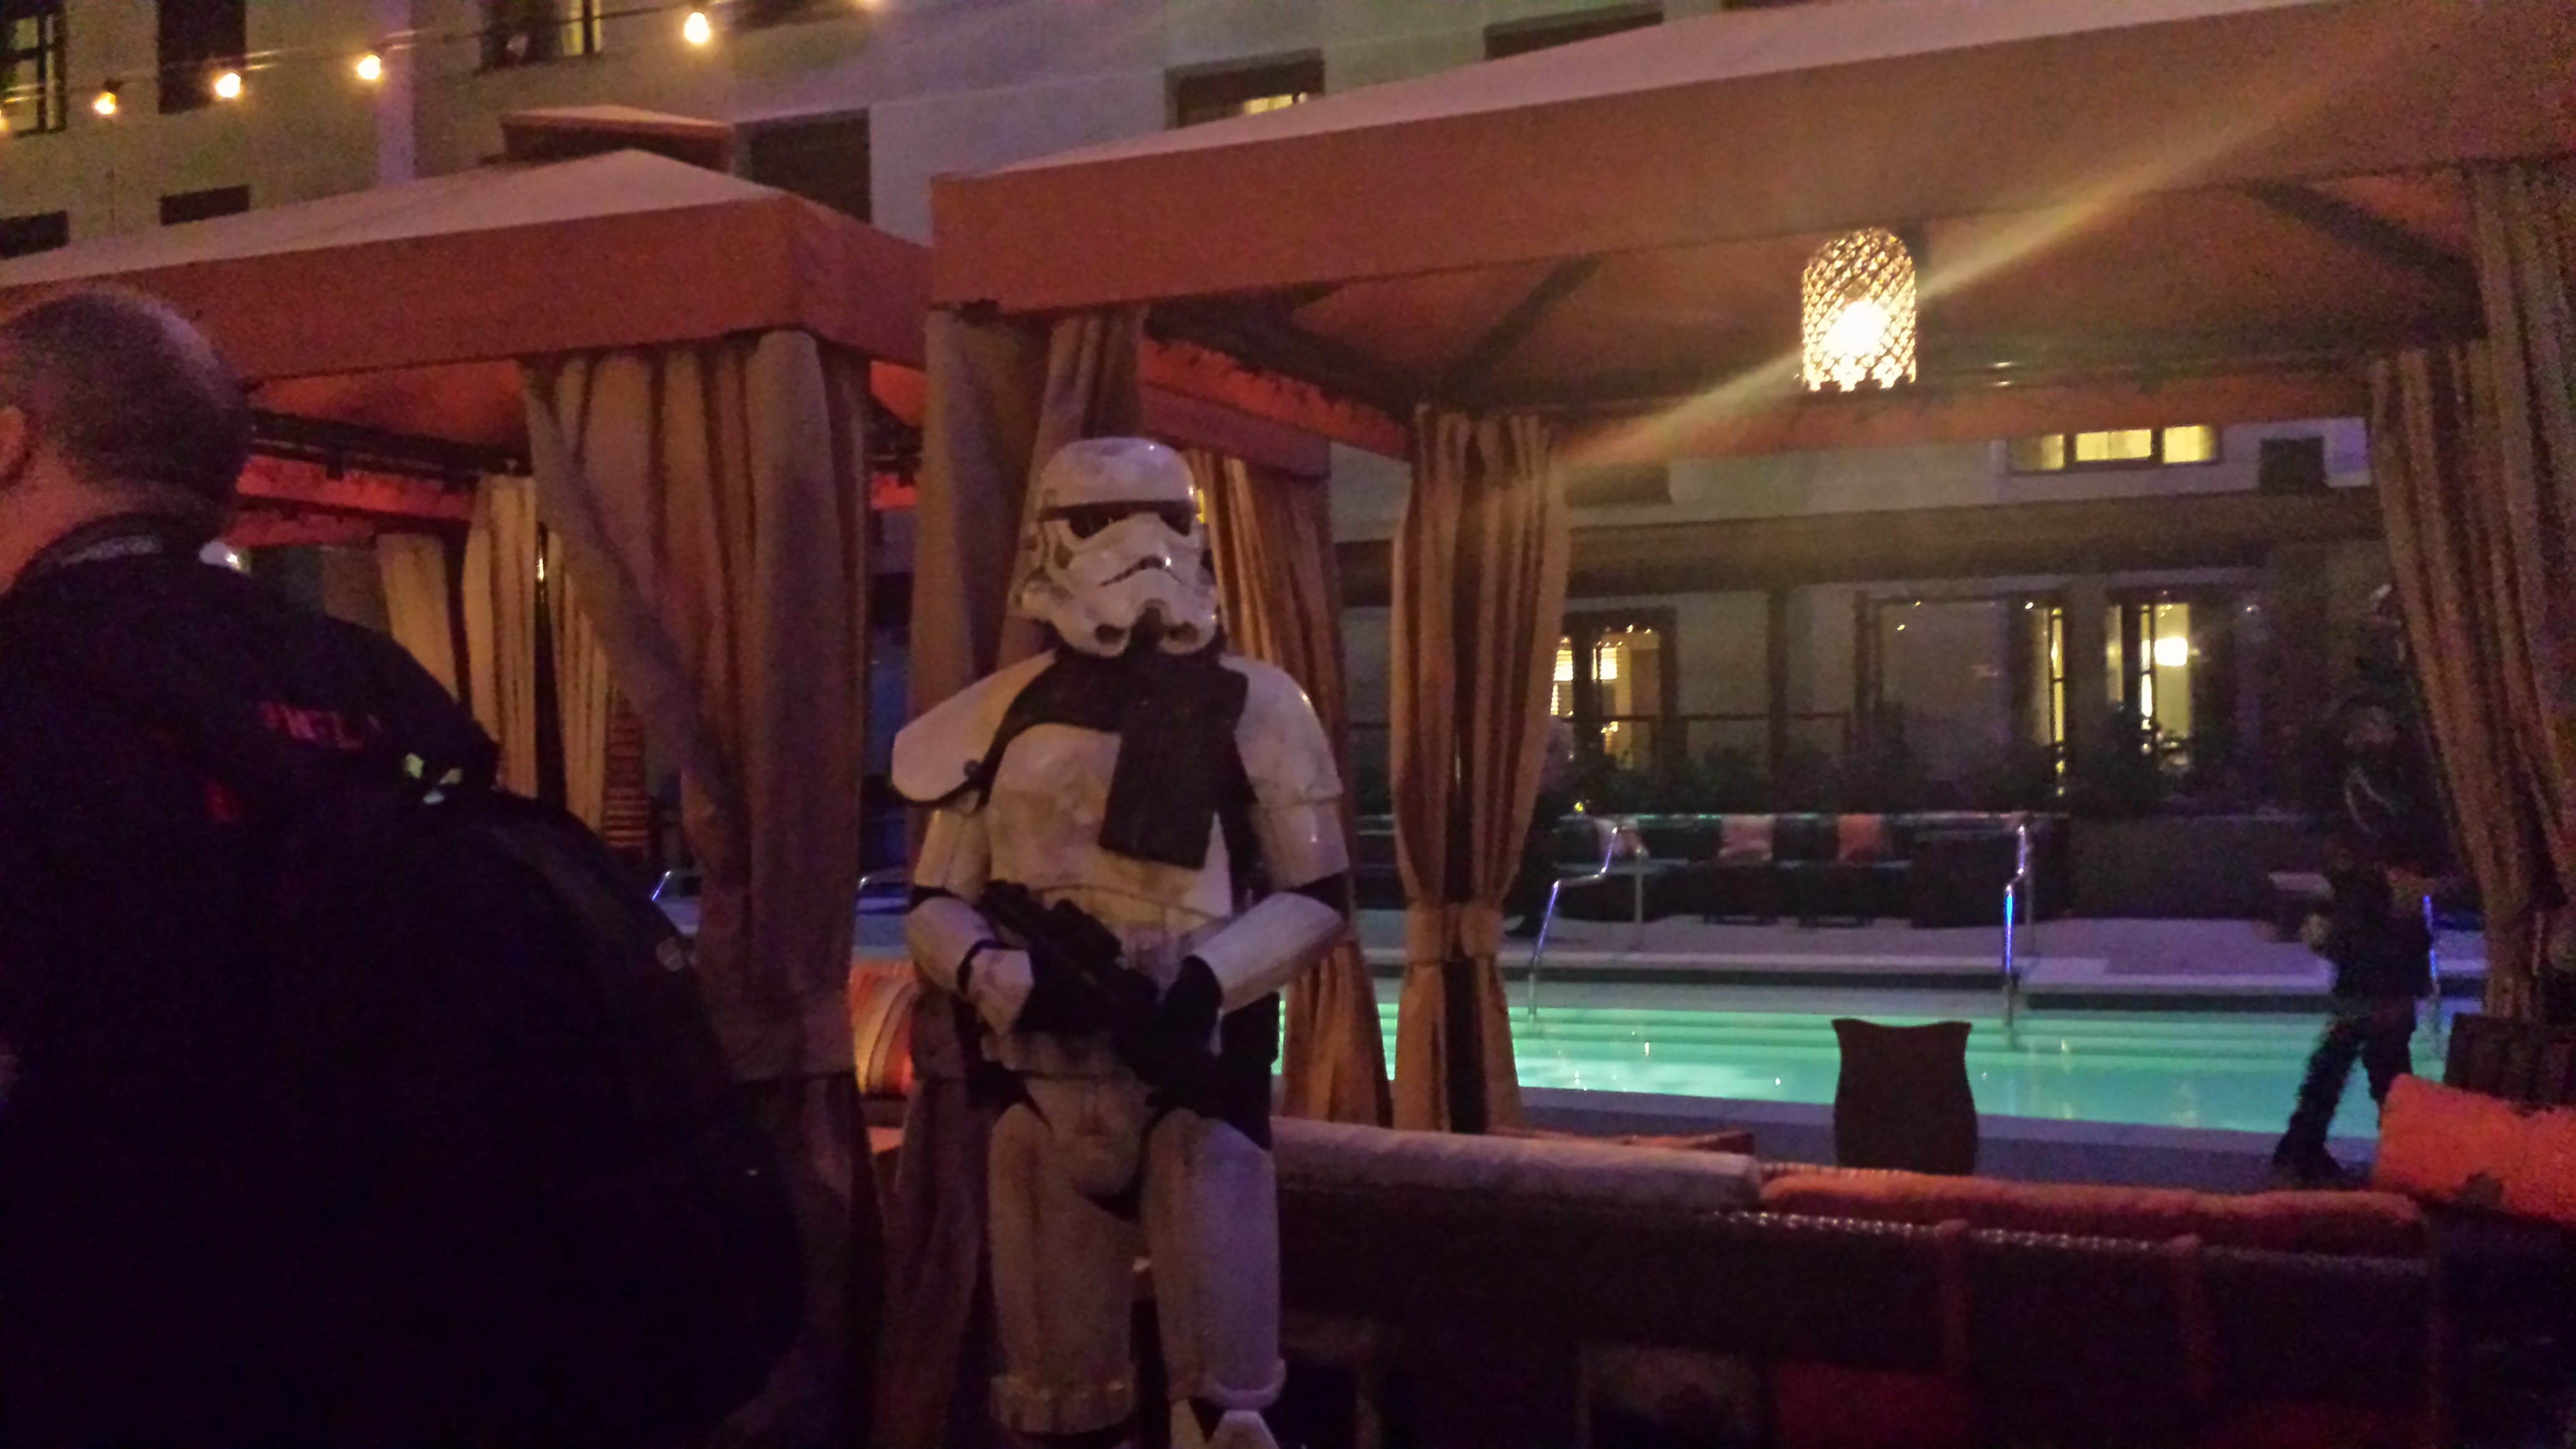 Star Wars Rebels party at San Diego Comic Con 2014